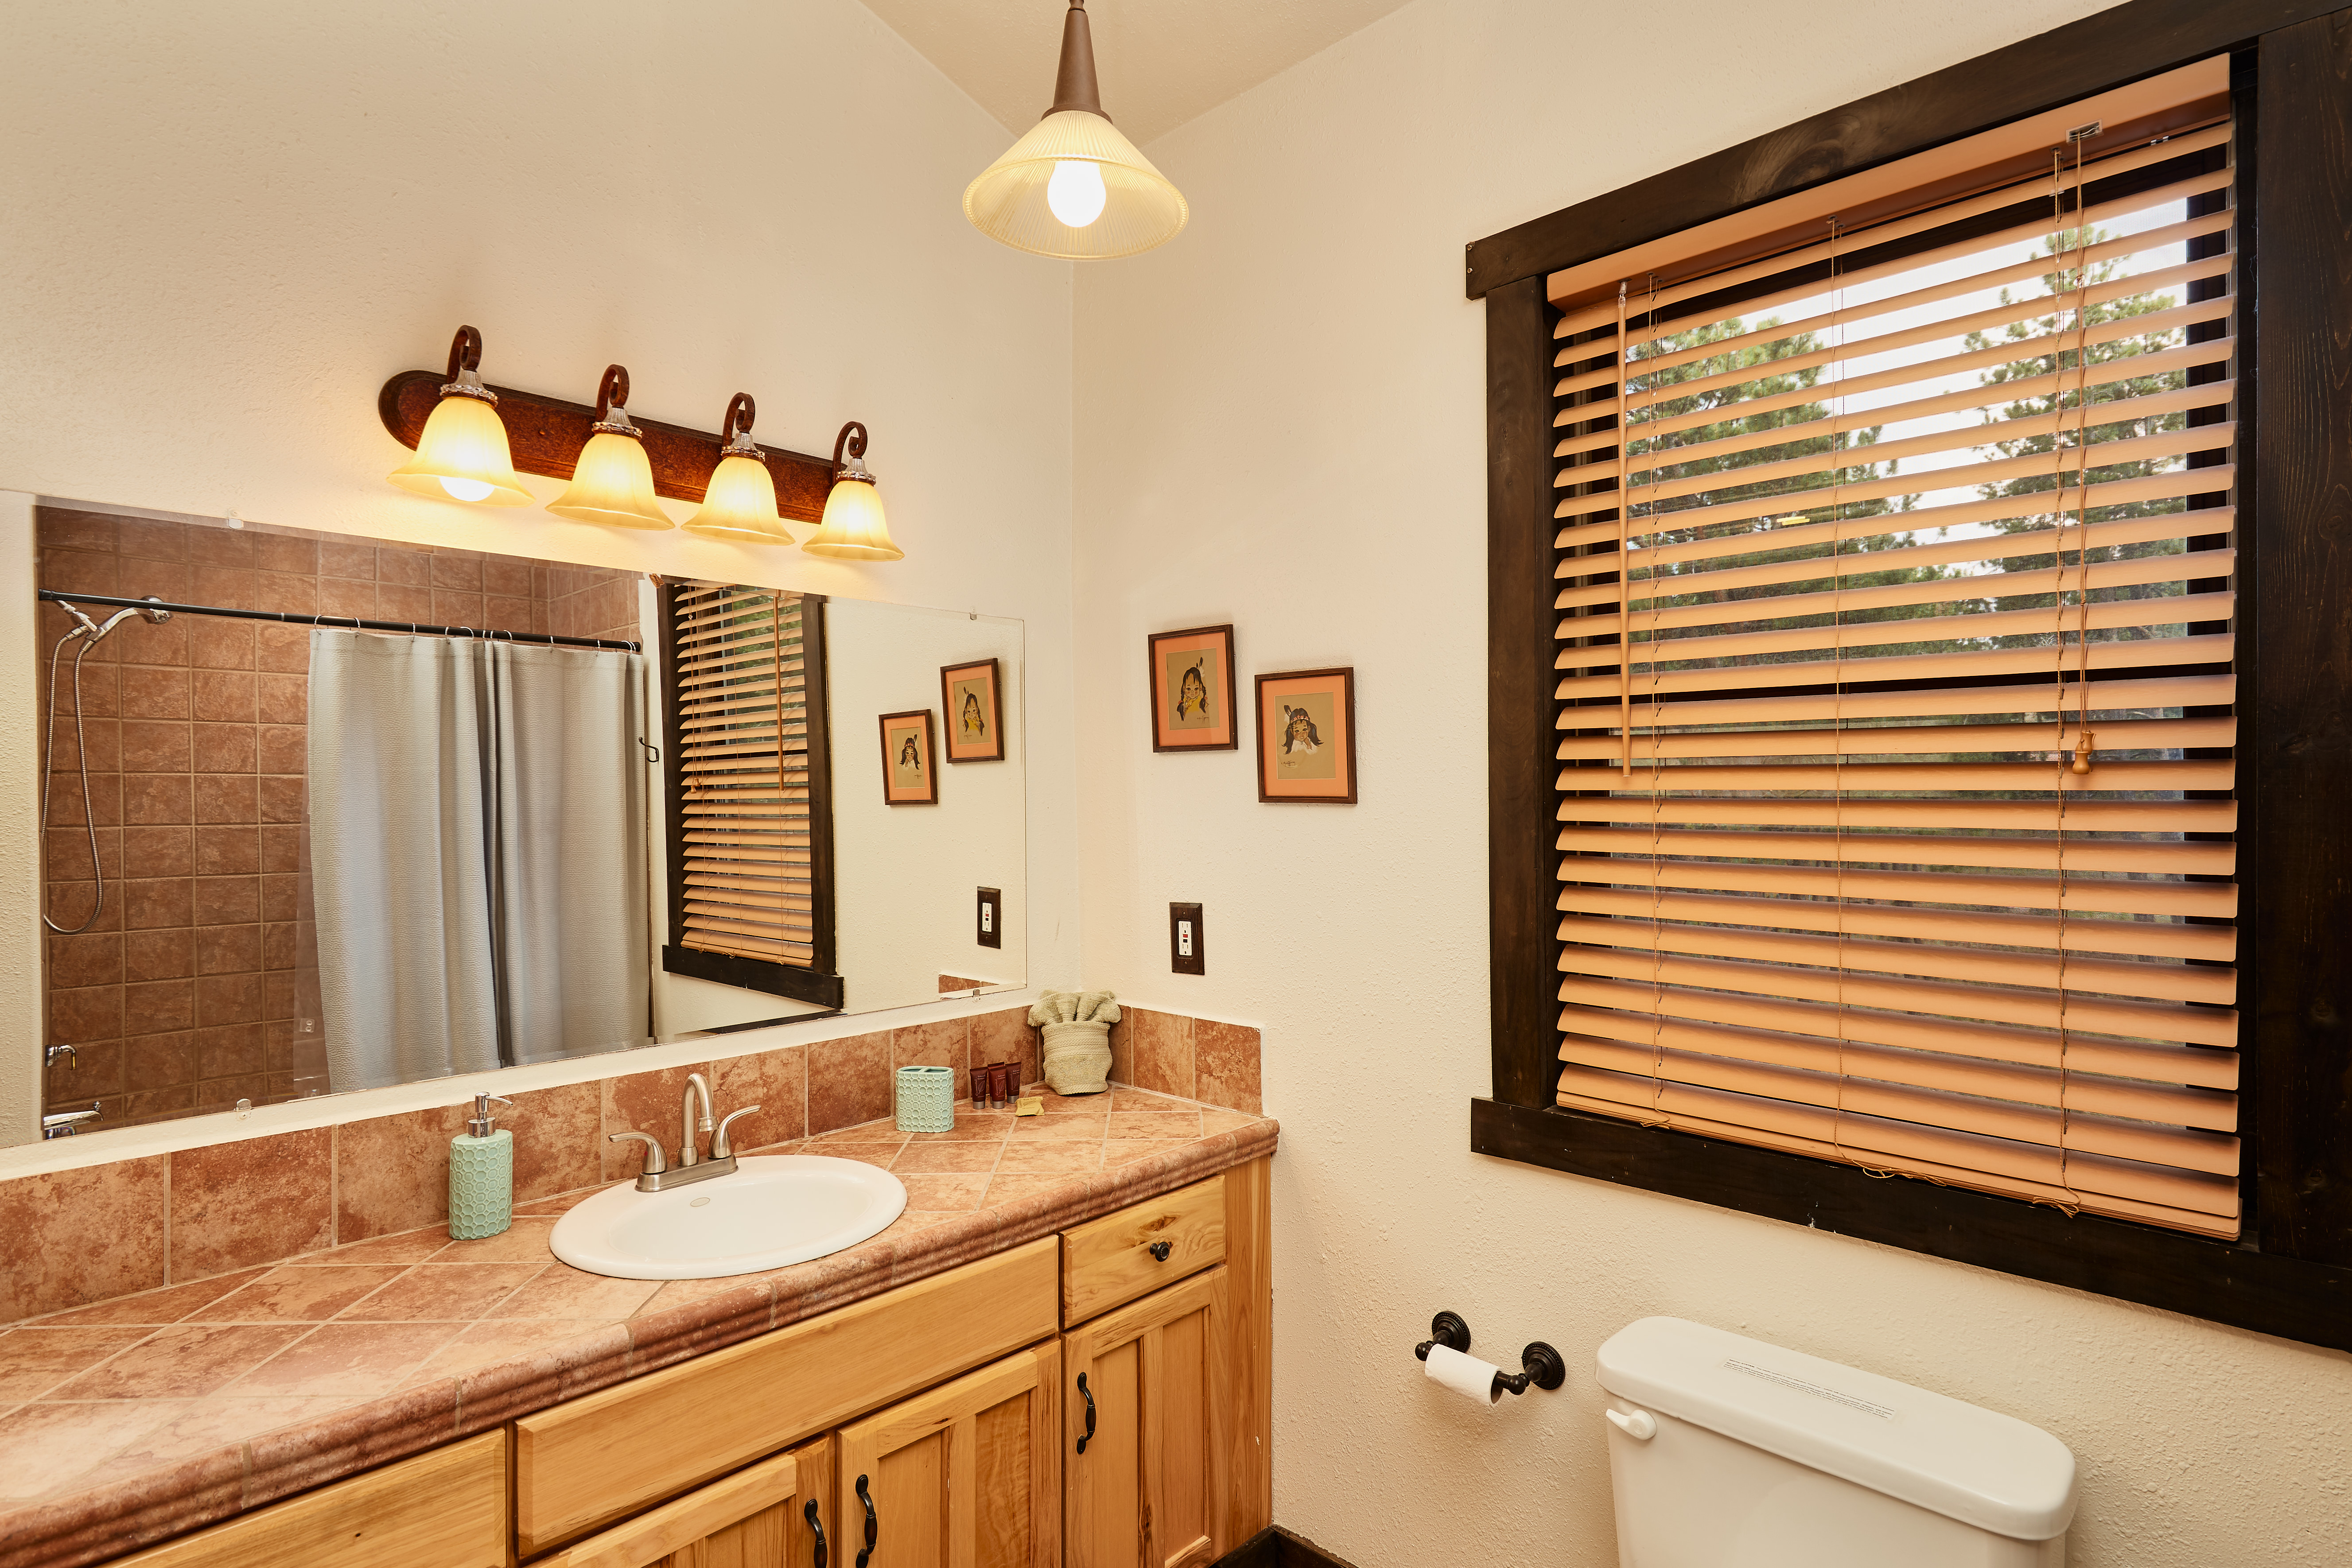 The upstairs bedroom has a large vanity.